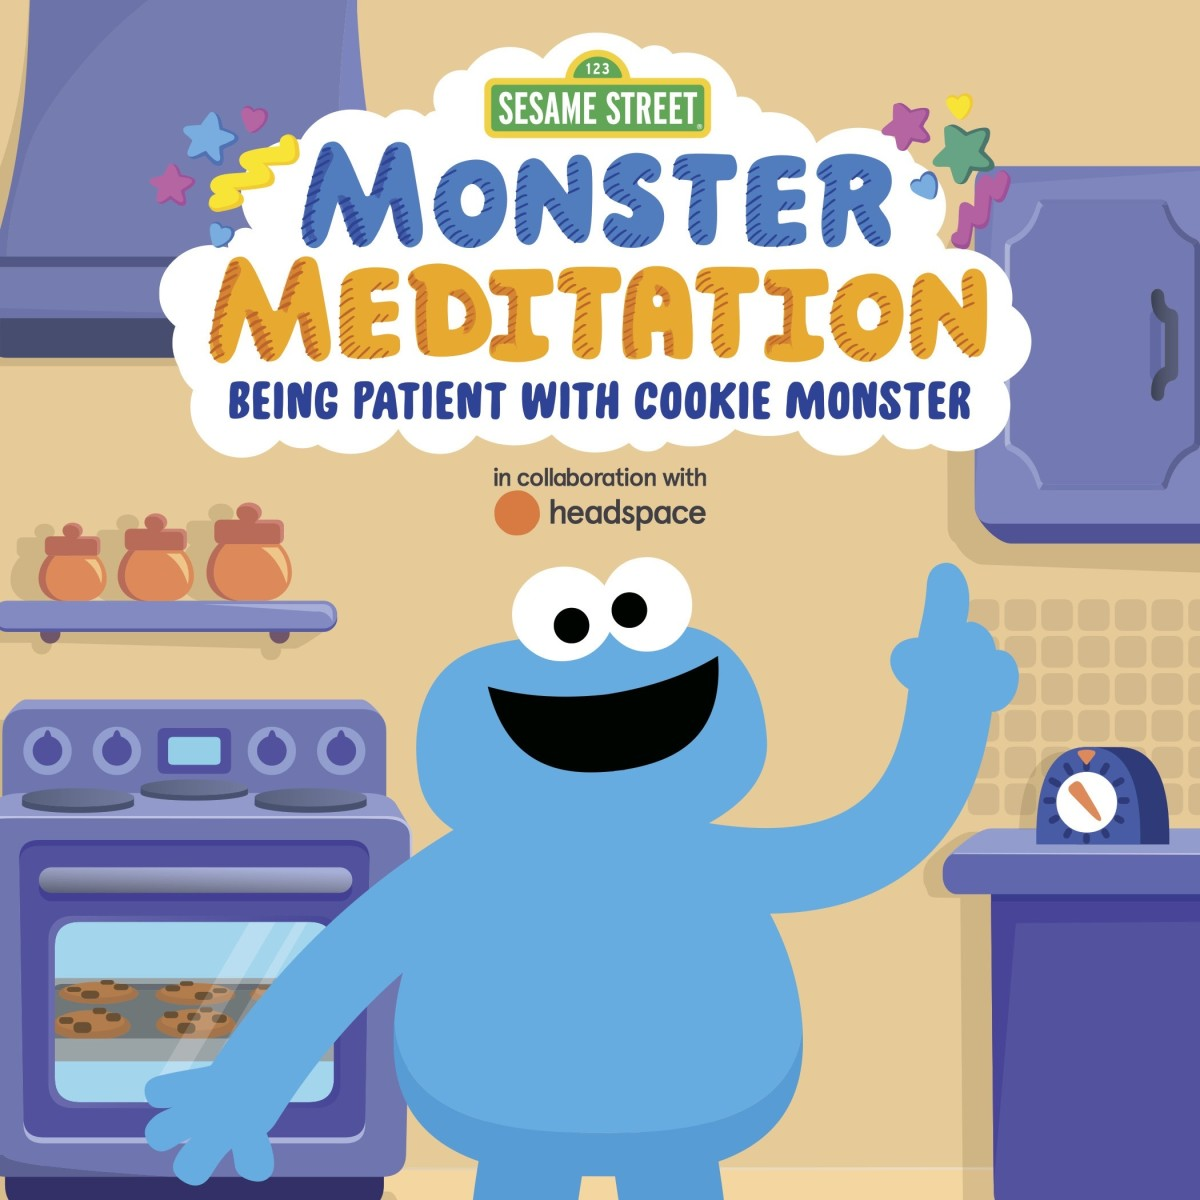 podcasts-from-sesame-street-for-our-little-ones